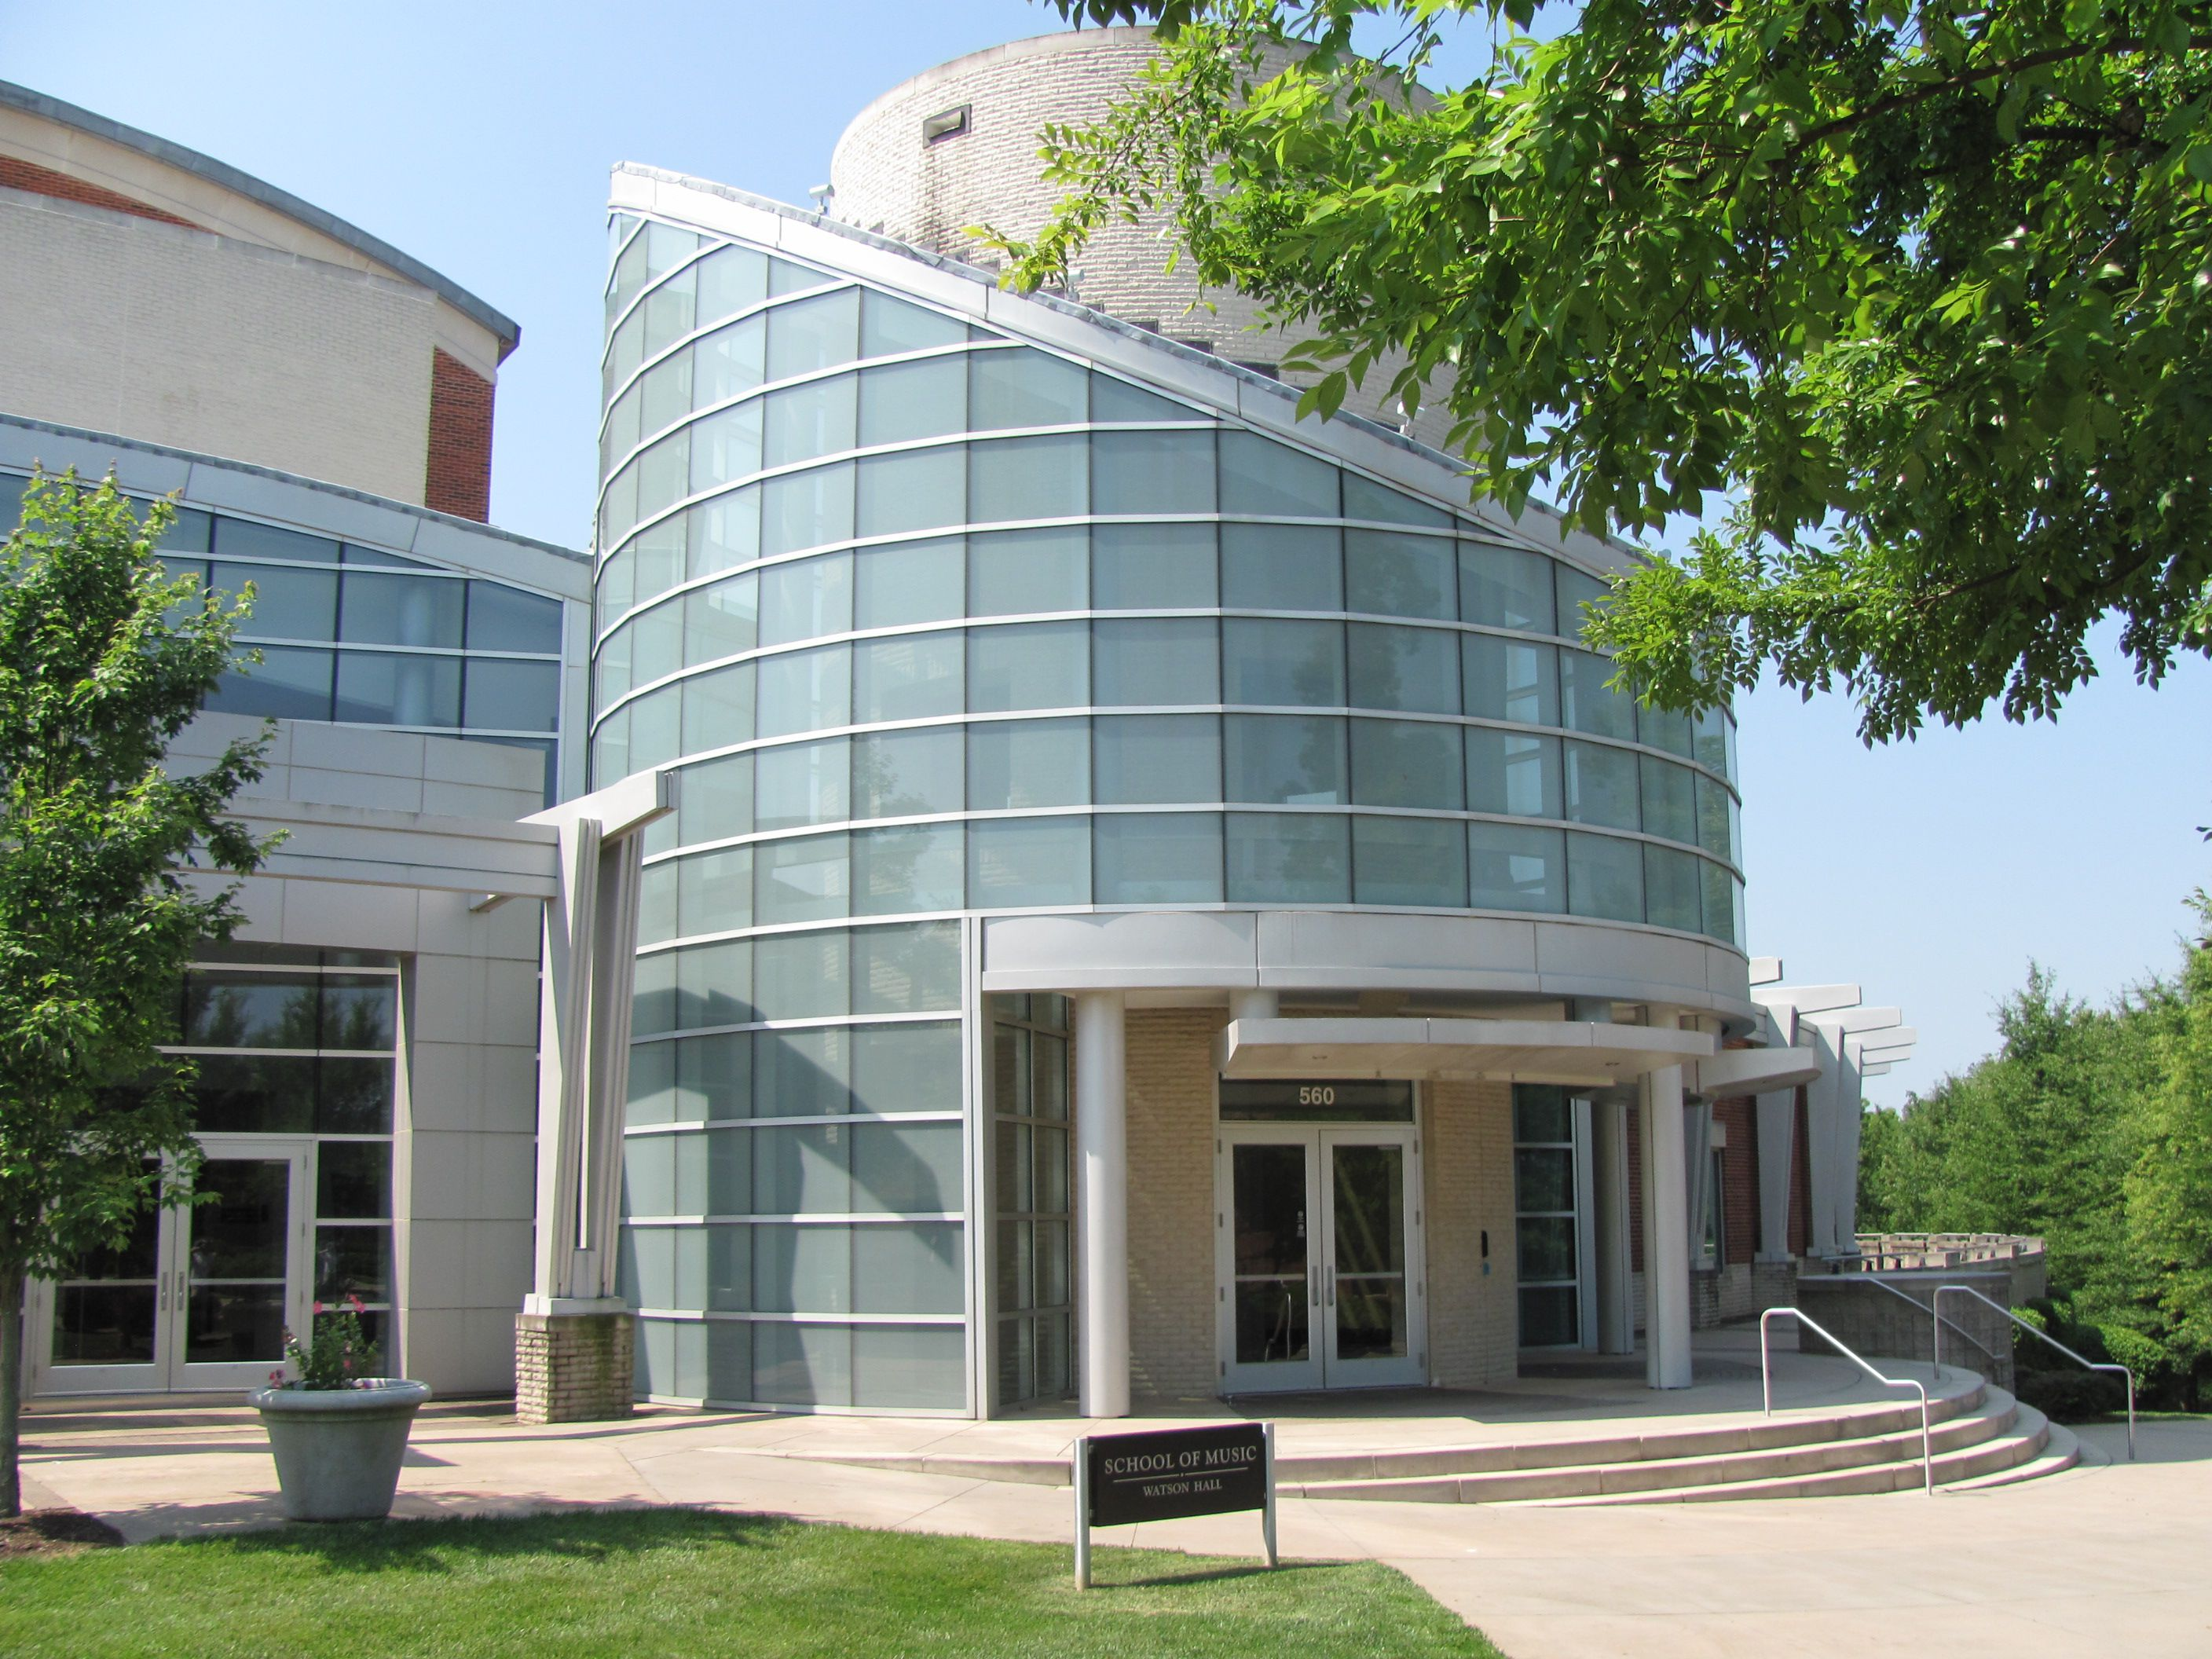 The School of Music at the University of North Carolina School of the Arts